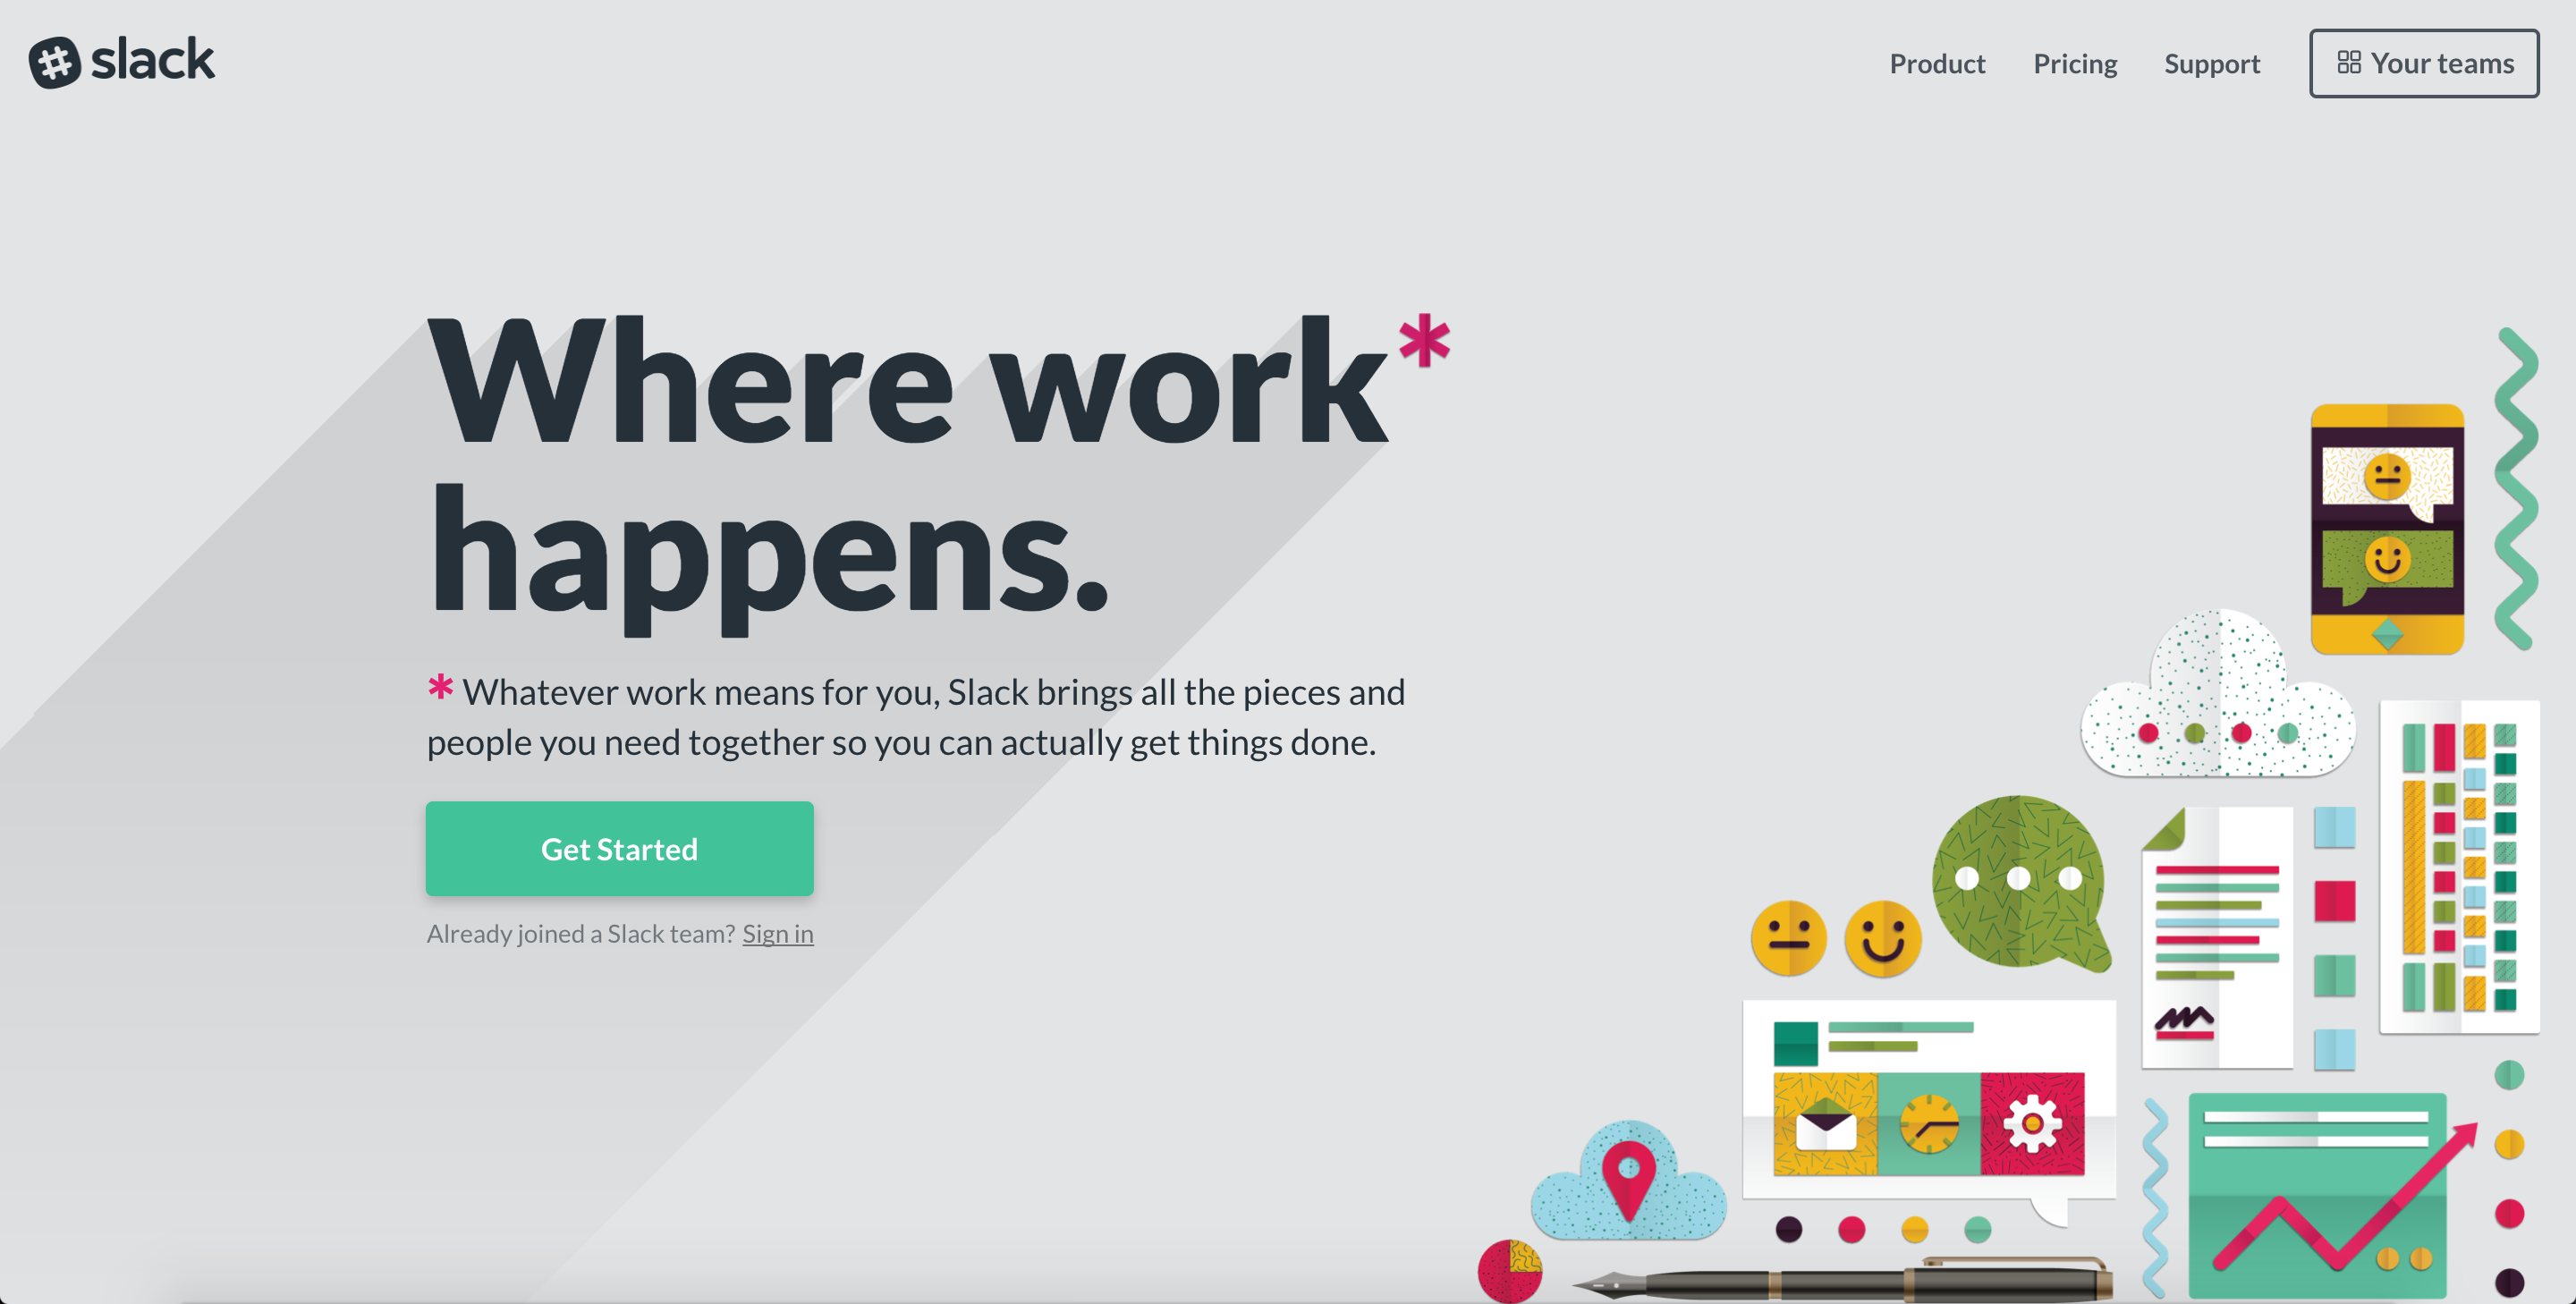 Slacku0027s Homepage Clearly Knows Its Purpose: To Get You Started With Slack.